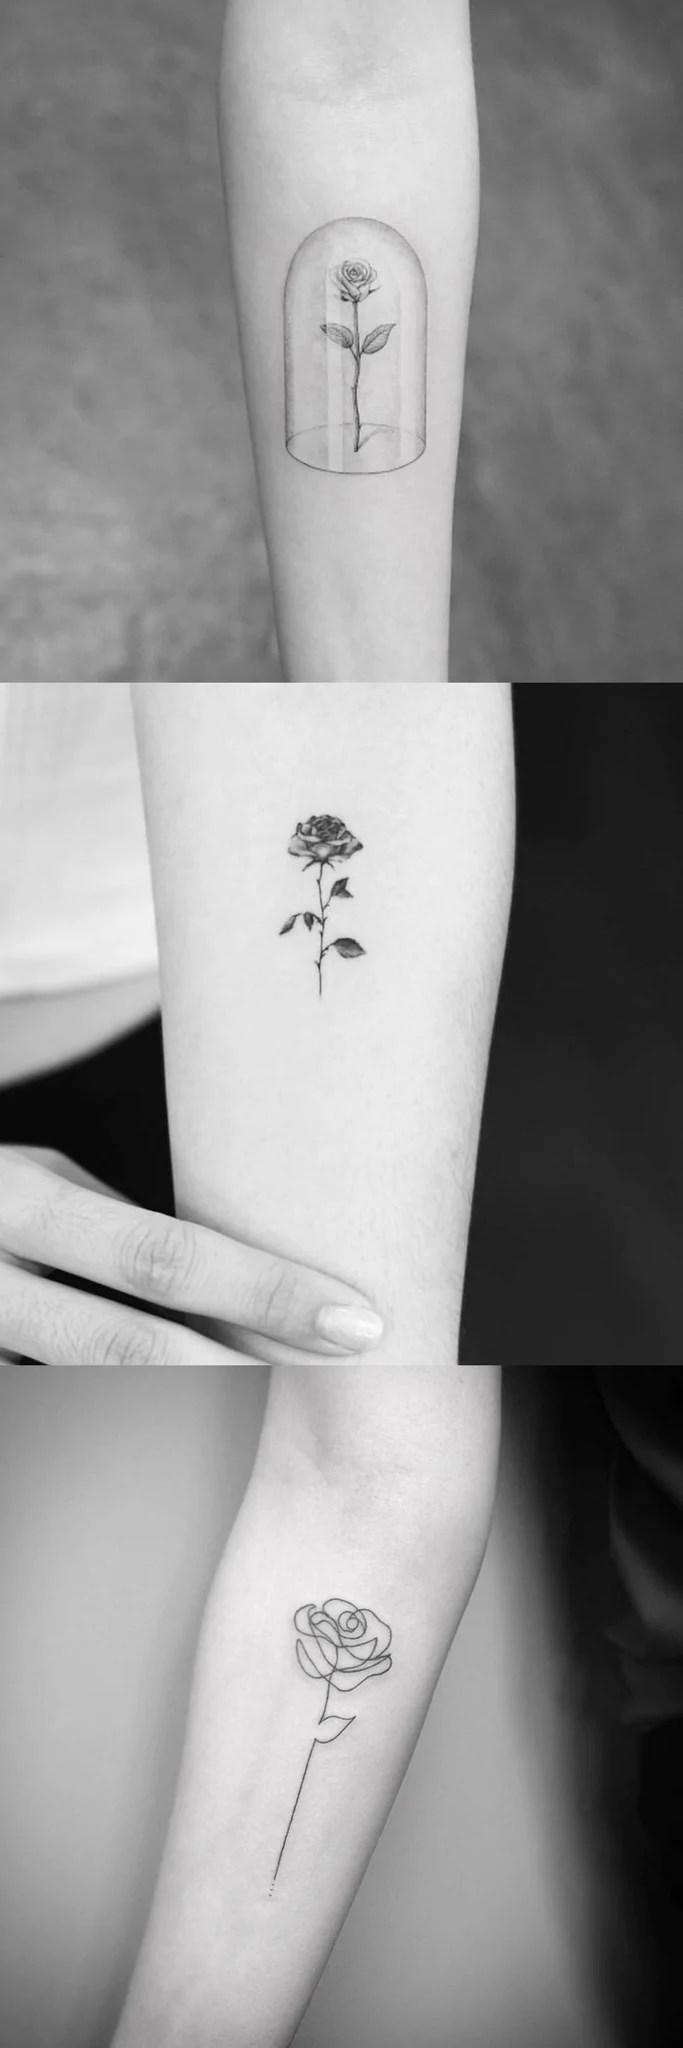 85b4dee5060d3 High Black Rose Tattoos On Arm Rose Tattoo Drawings Women Rose ...